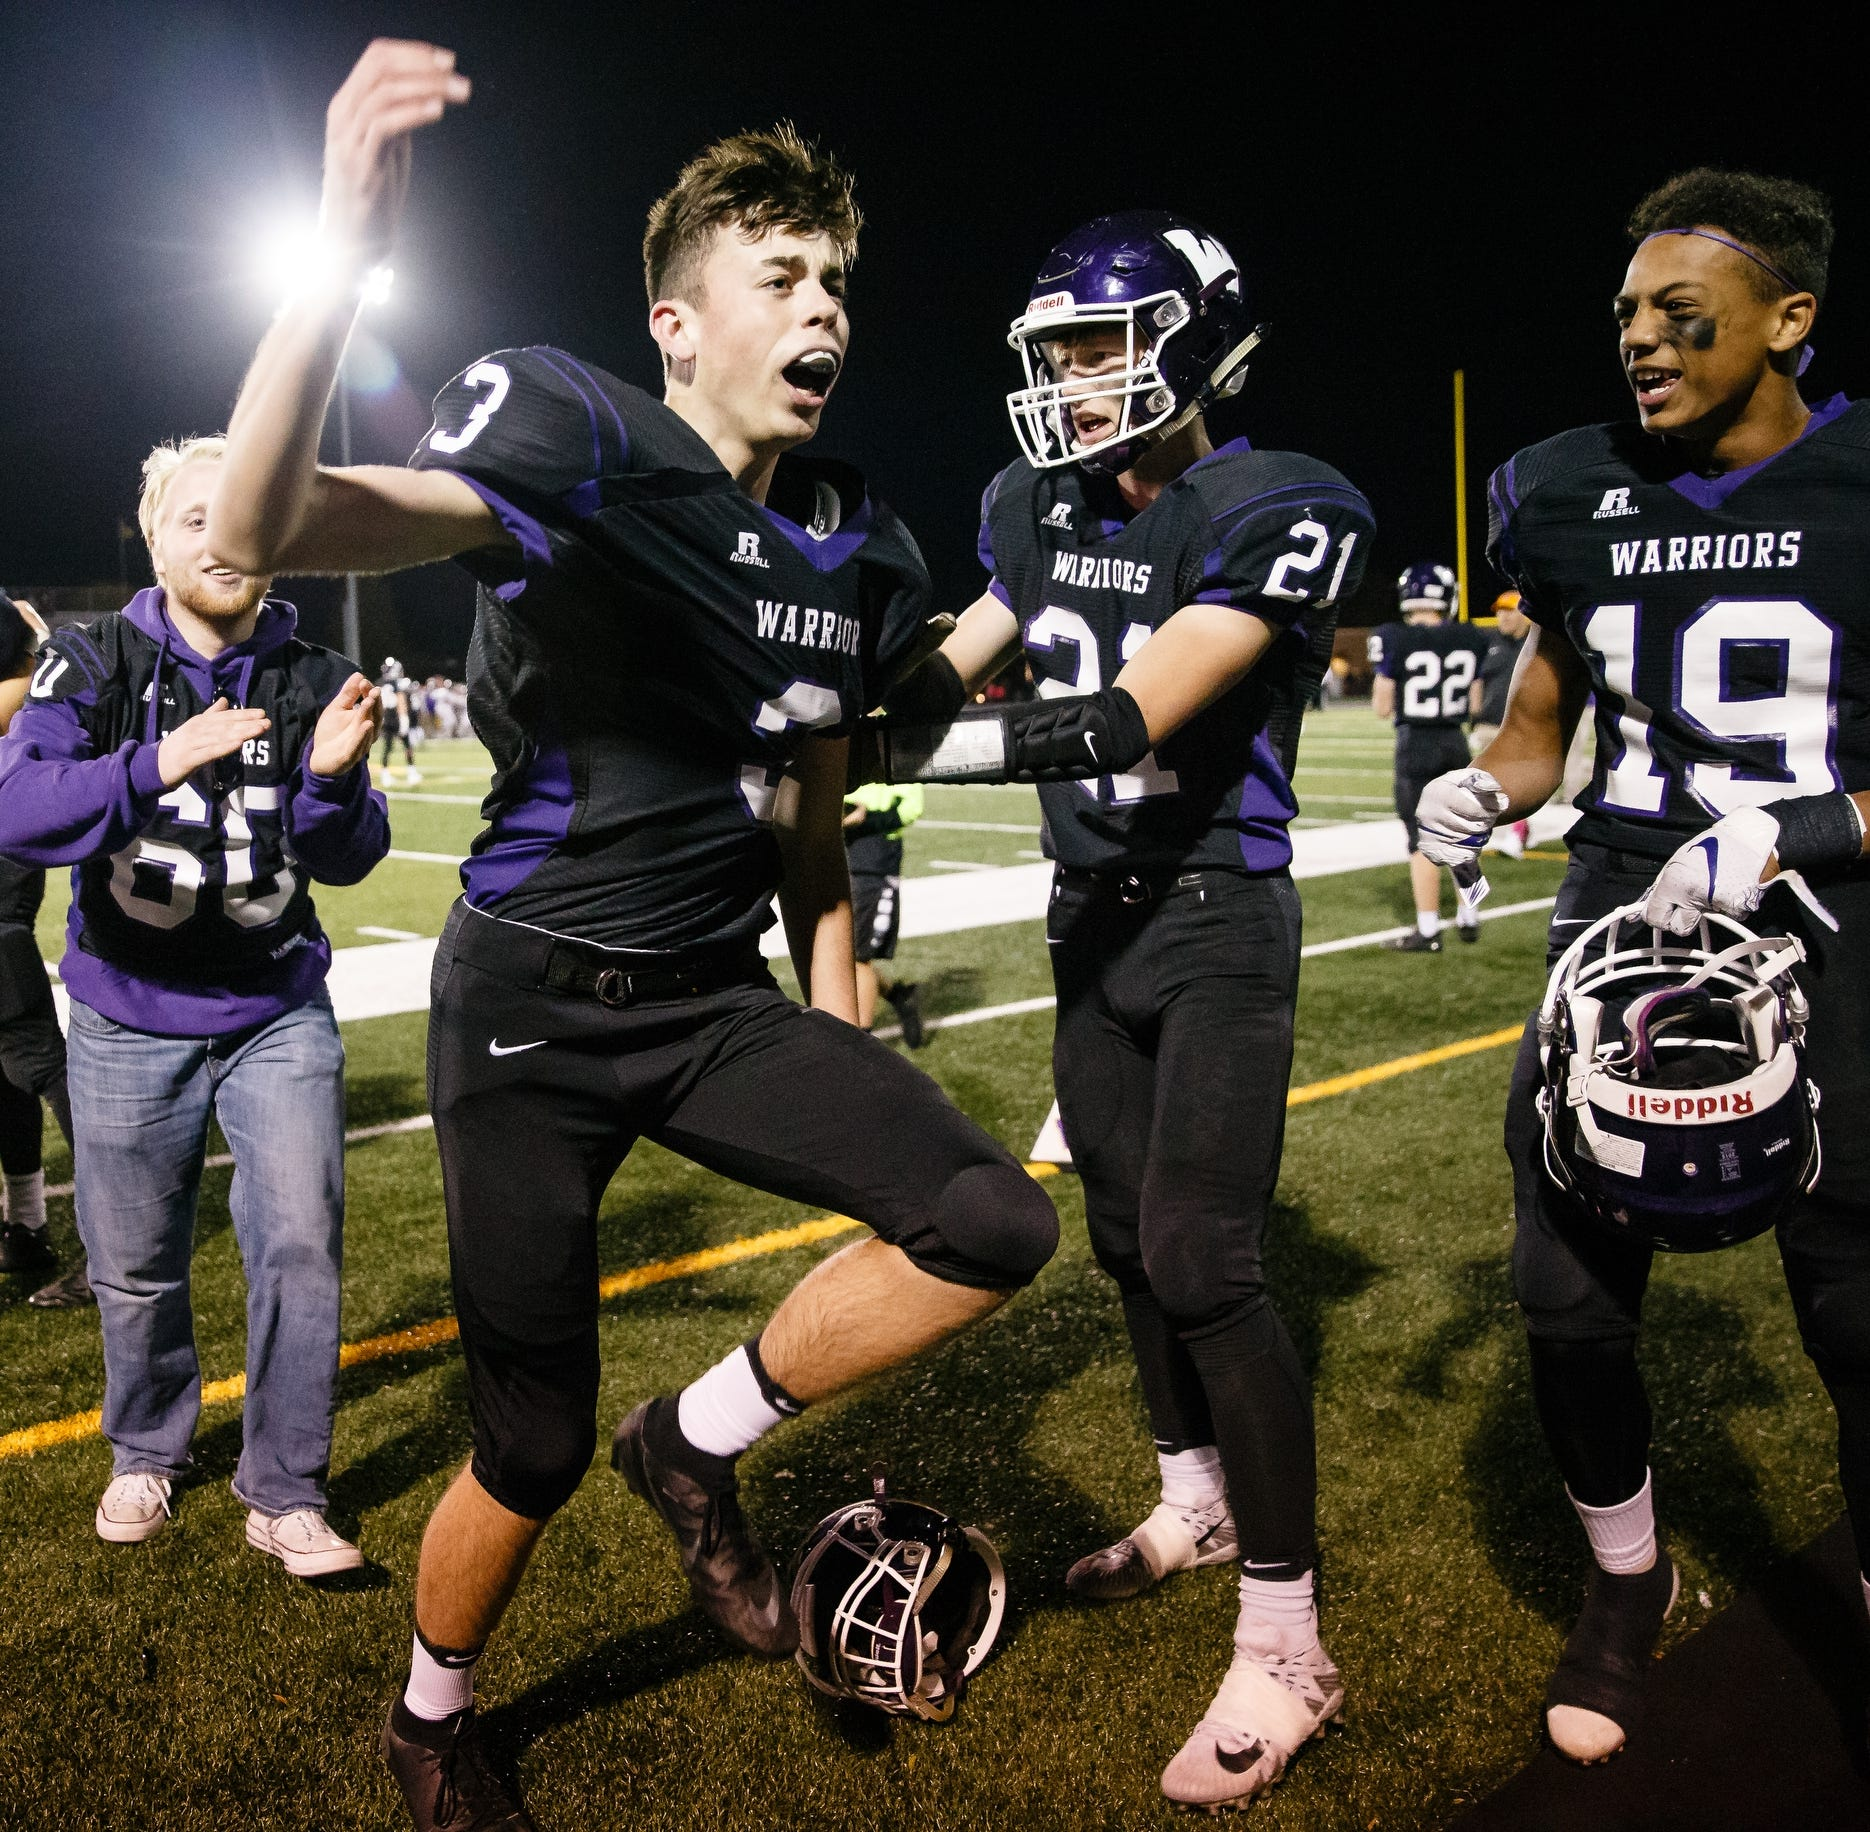 Iowa high school football: 23 thoughts on the final RPI rankings and 2018 playoff pairings